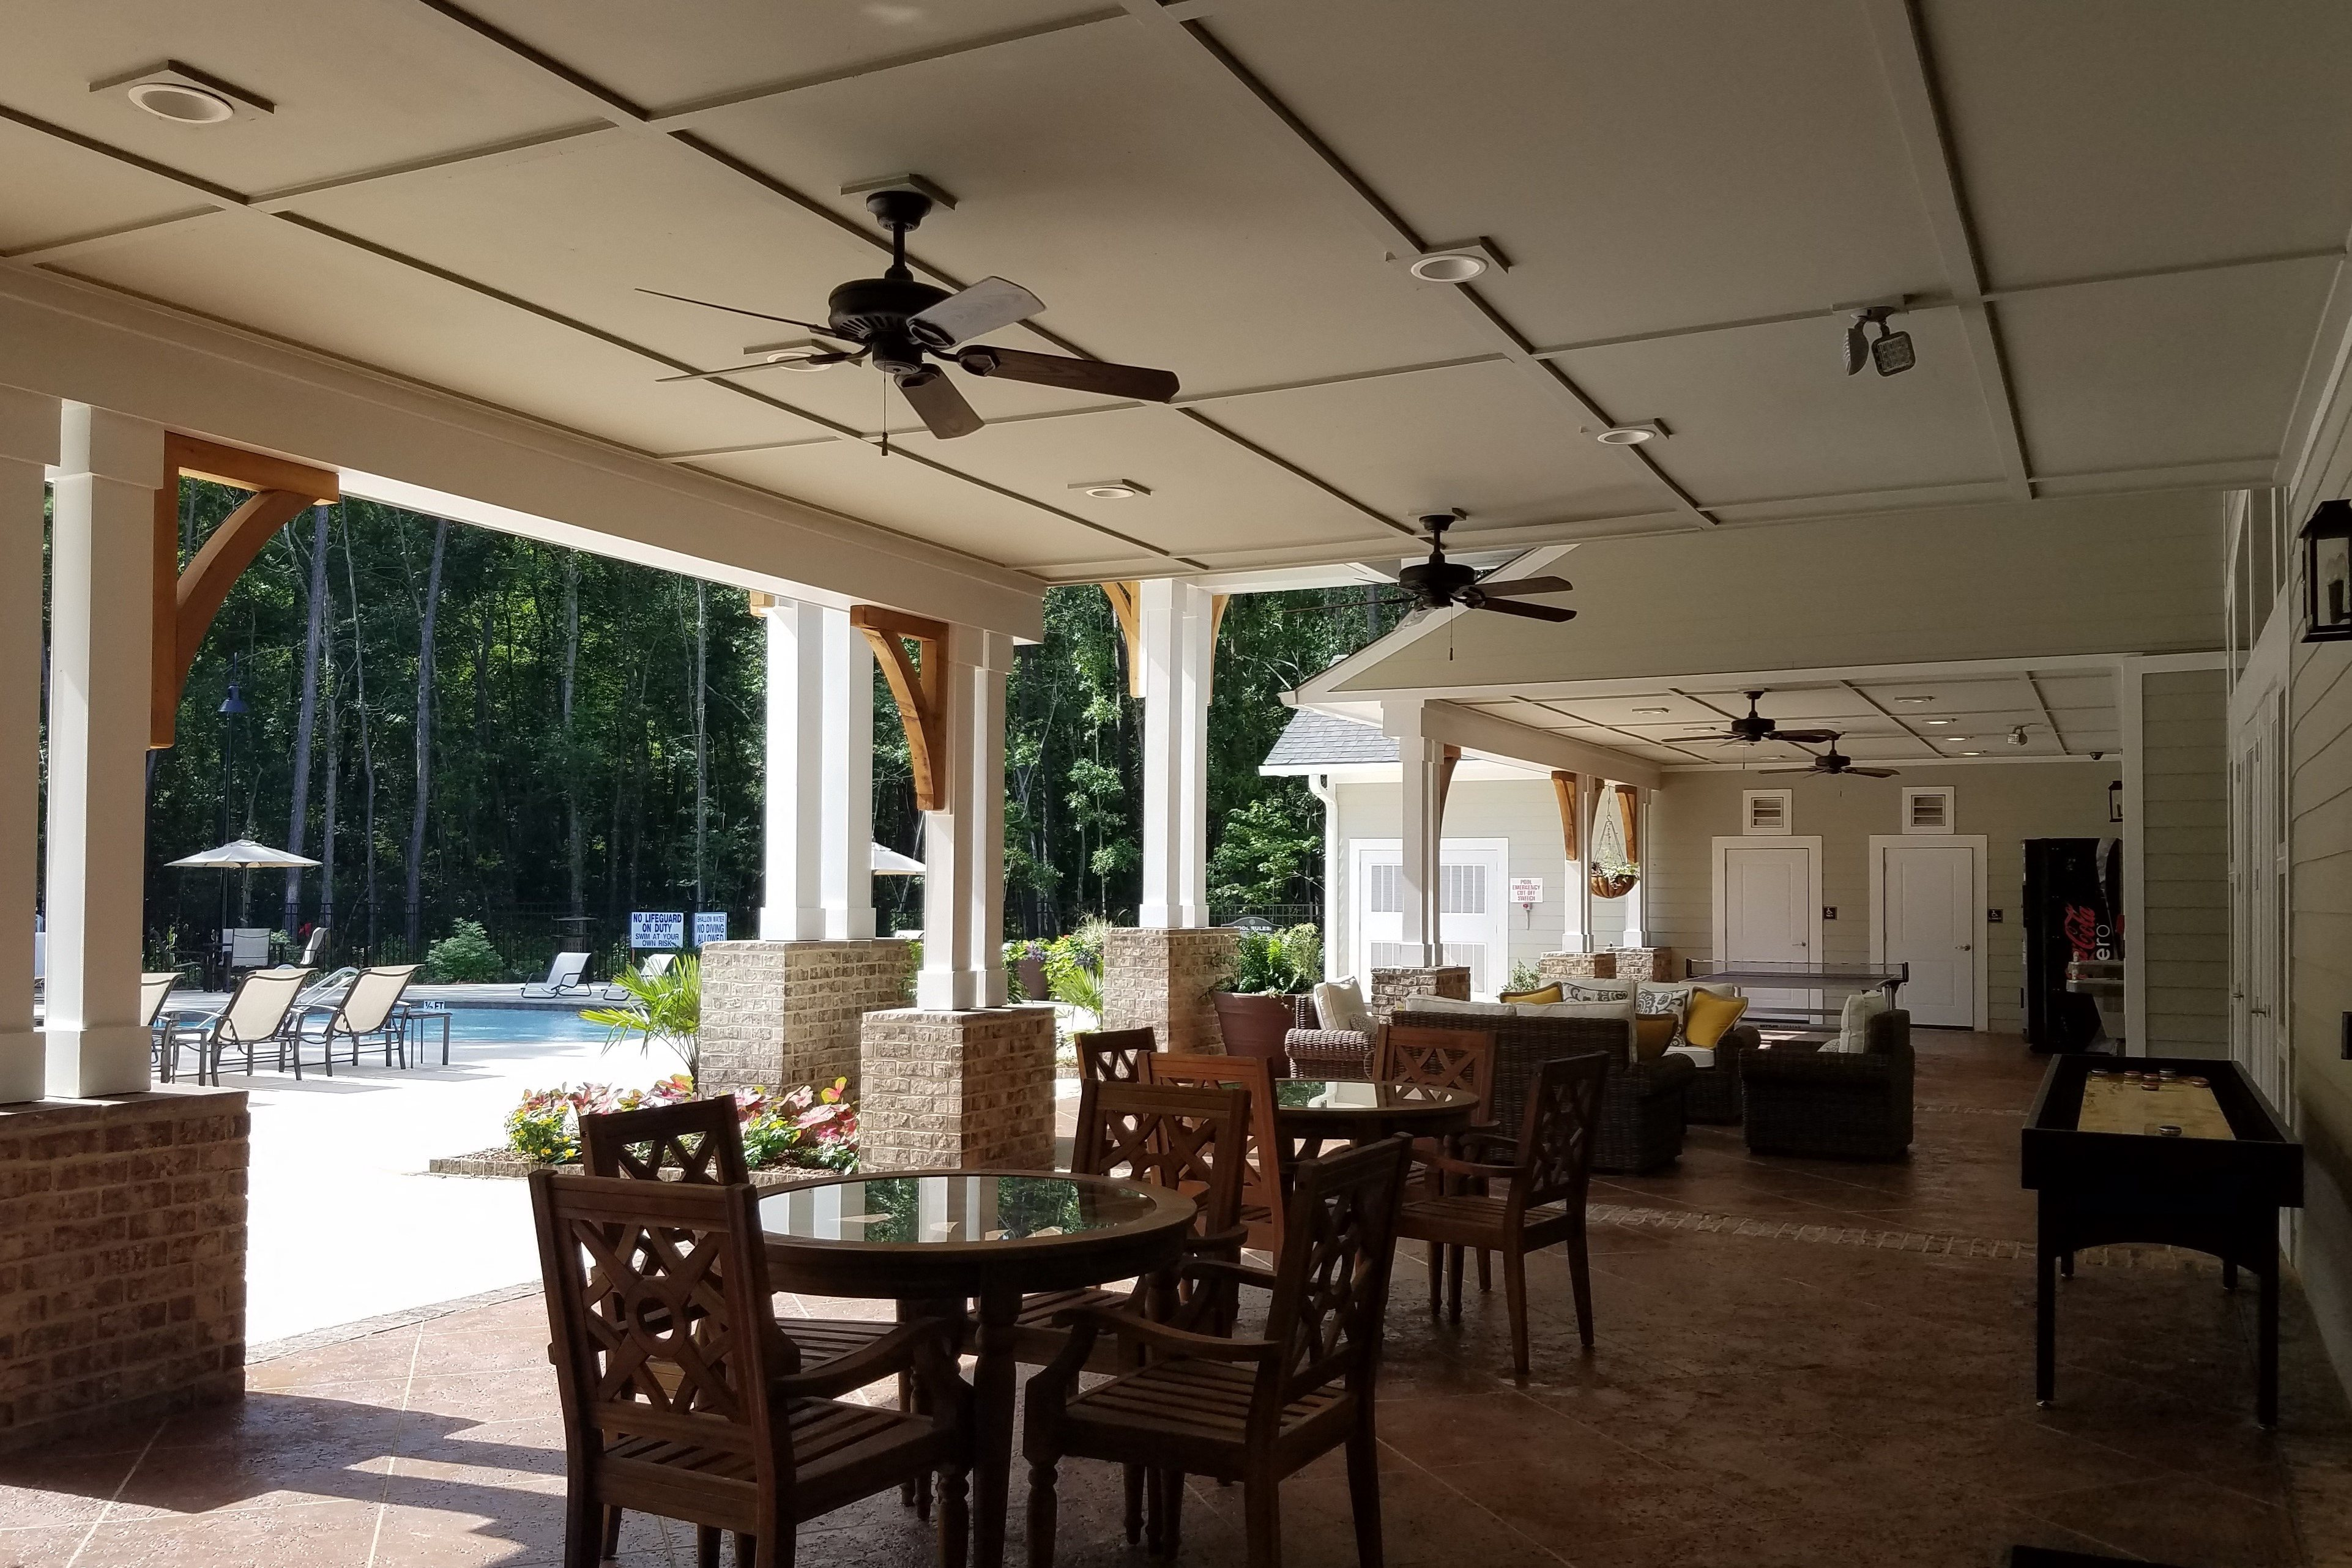 Poolside Entertainment Area with Outdoor Kitchen